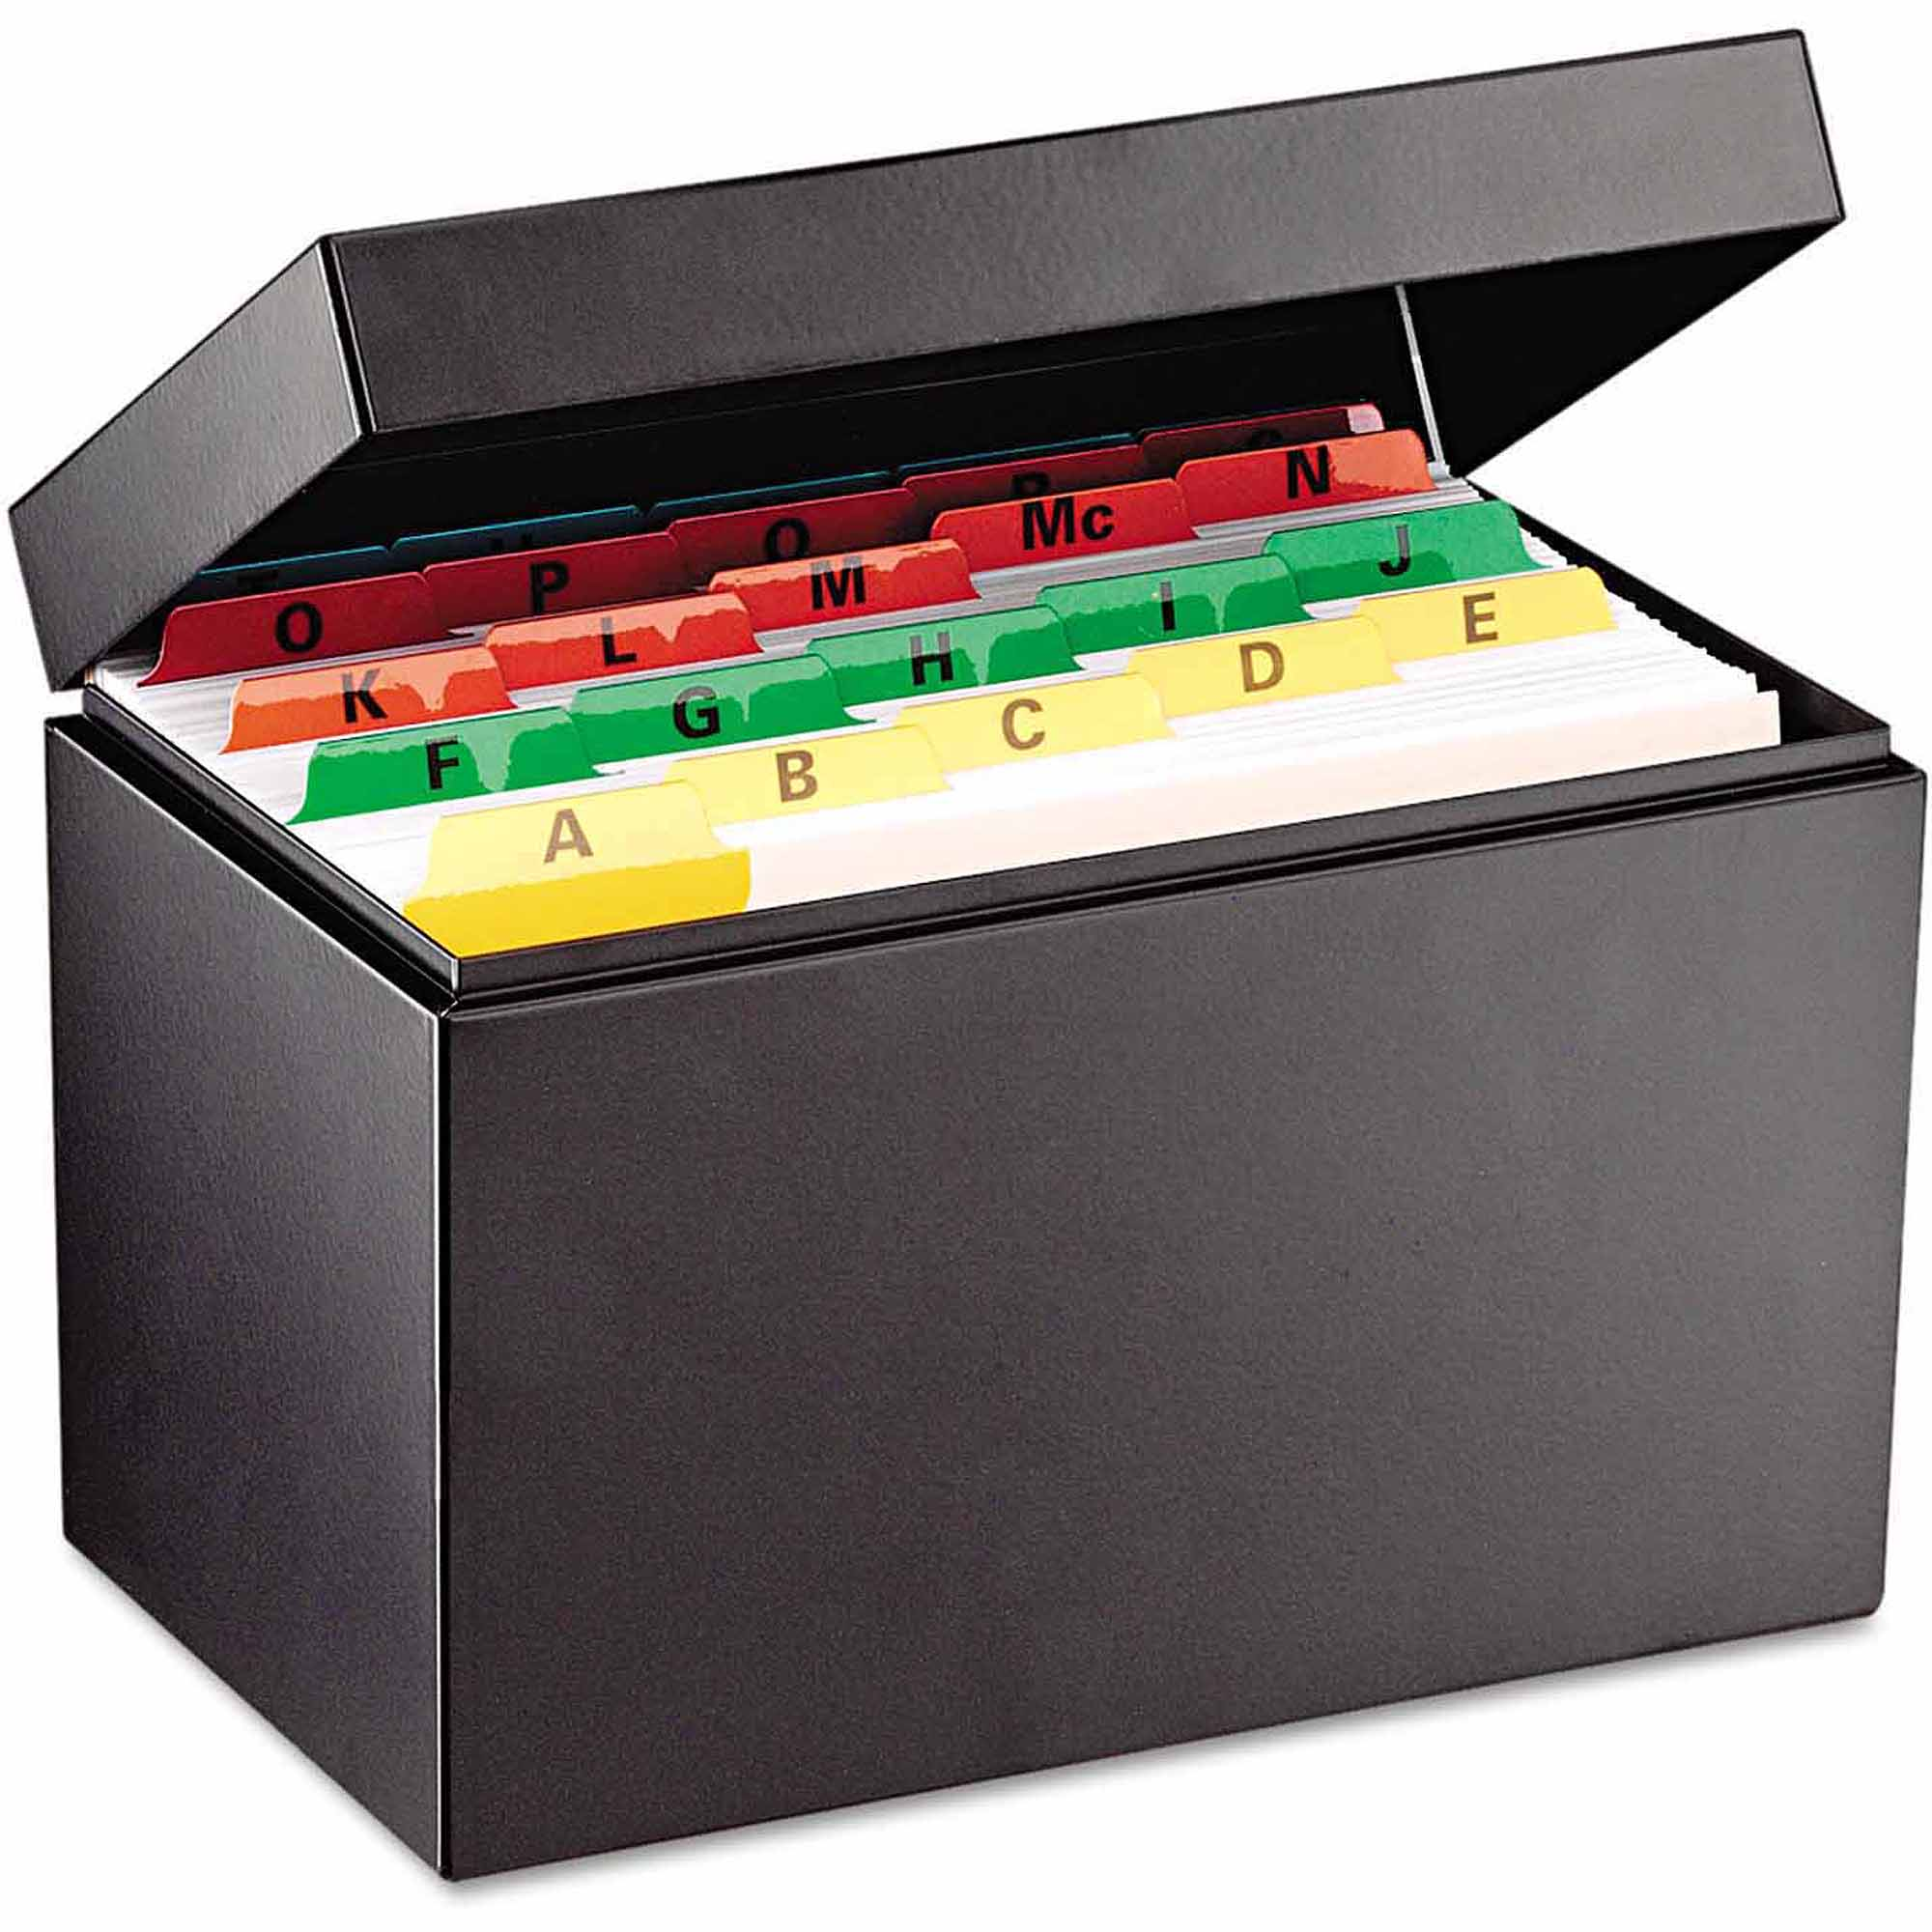 "SteelMaster Index Card File, Holds 900 5"" x 8"" cards"